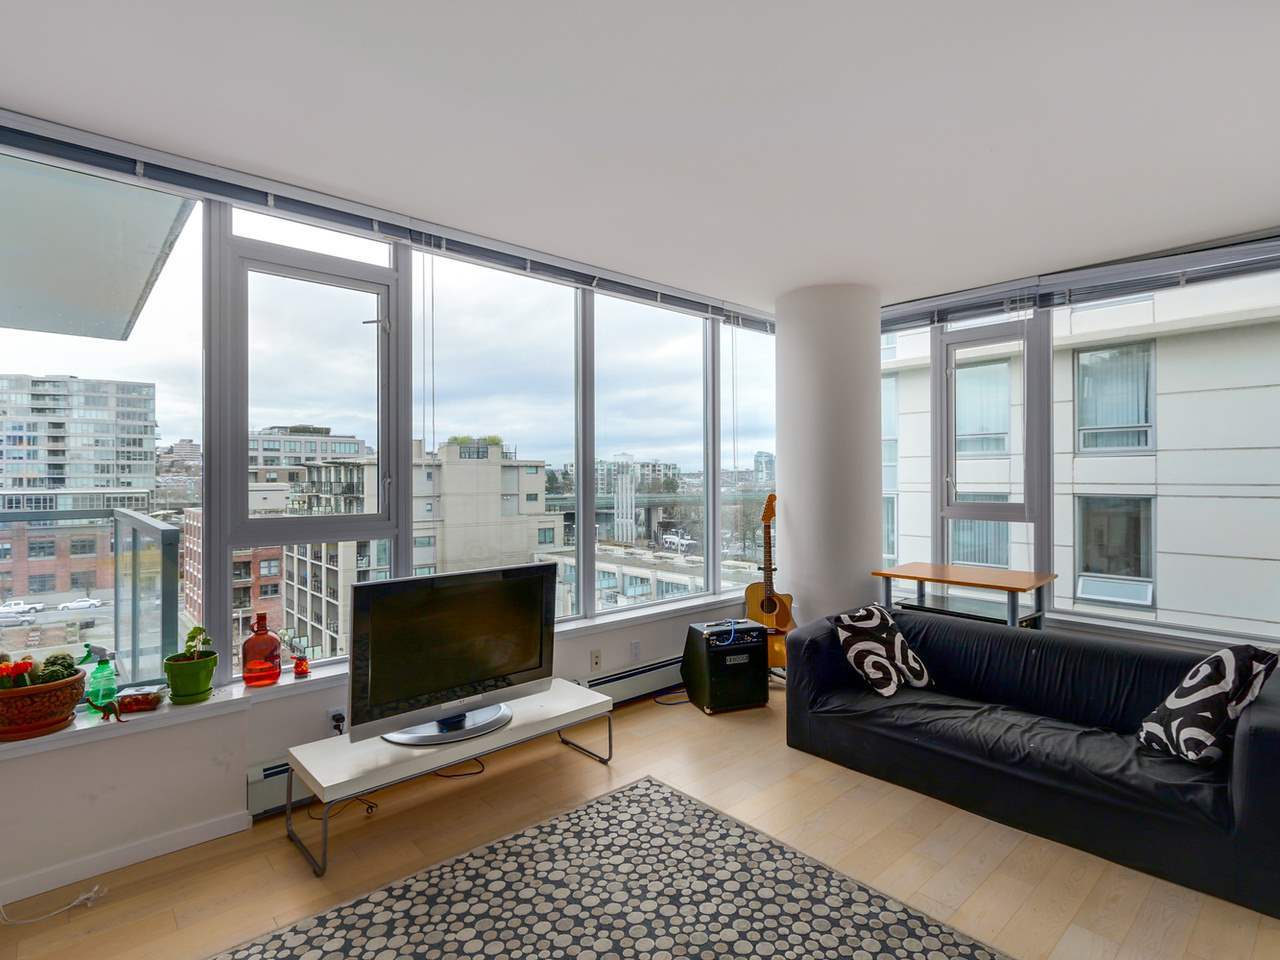 "Photo 4: 802 1887 CROWE Street in Vancouver: False Creek Condo for sale in ""PINNACLE ON FALSE CREEK"" (Vancouver West)  : MLS® # R2044450"